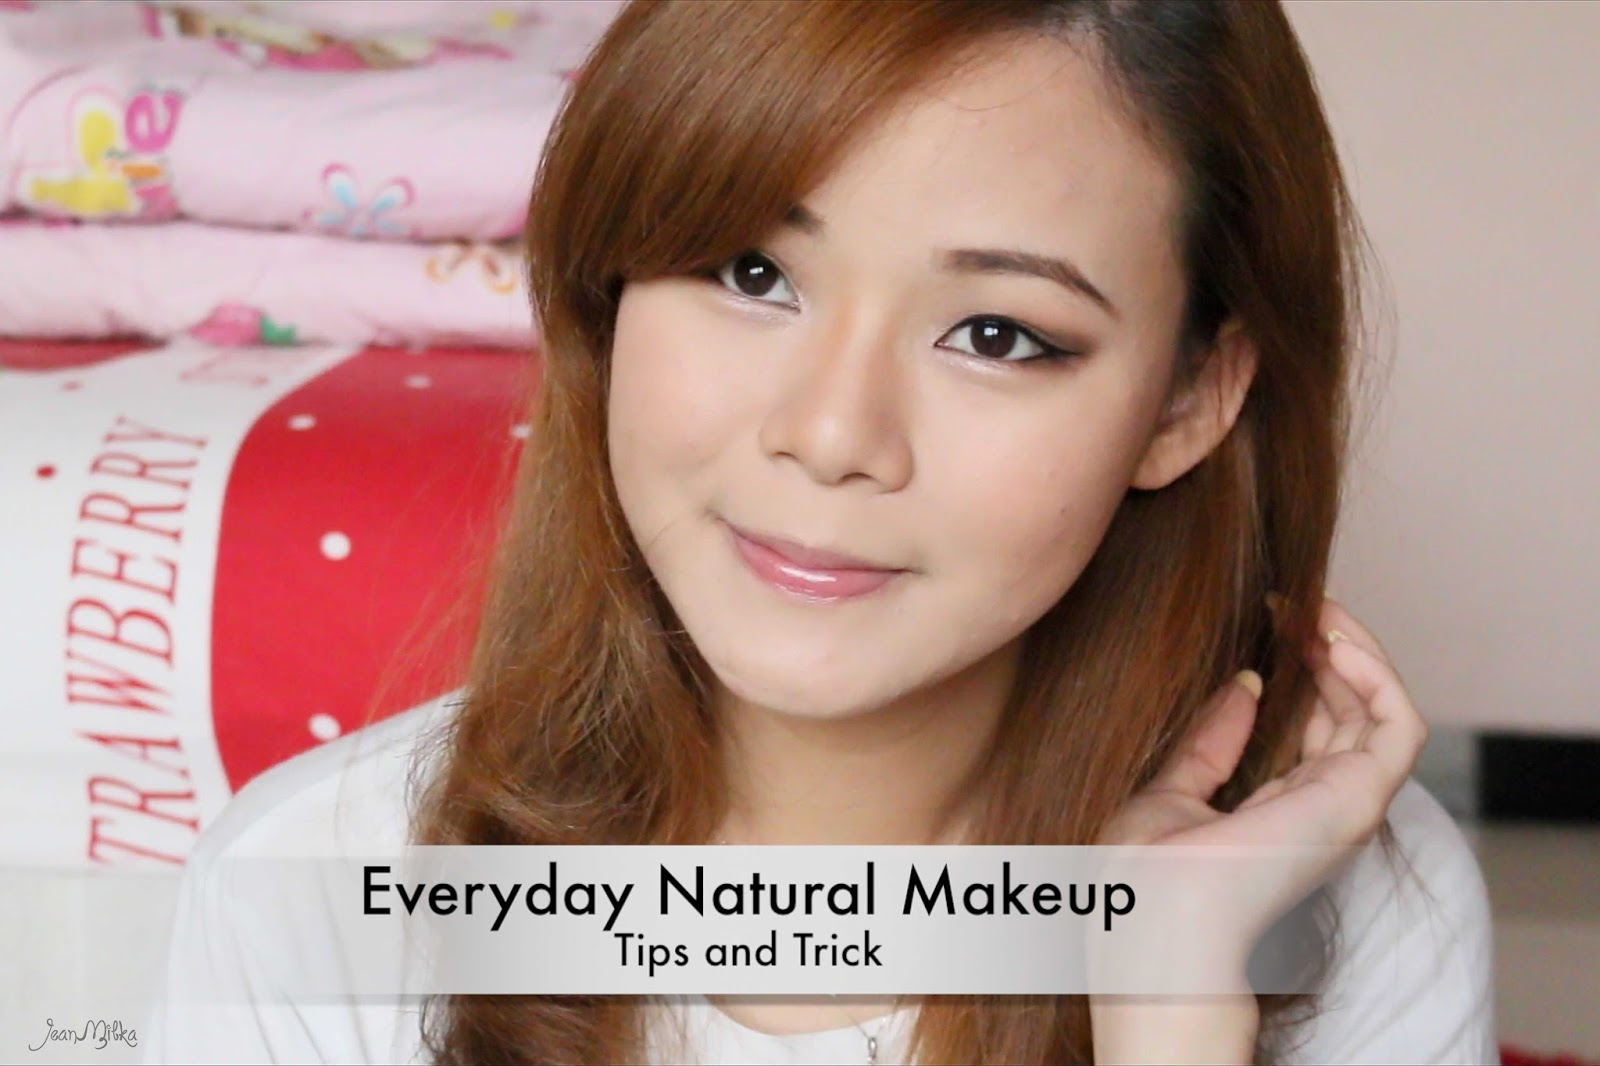 tutorial, video, youtube, jeanmilka, everyday, makeup, asian, small eyes